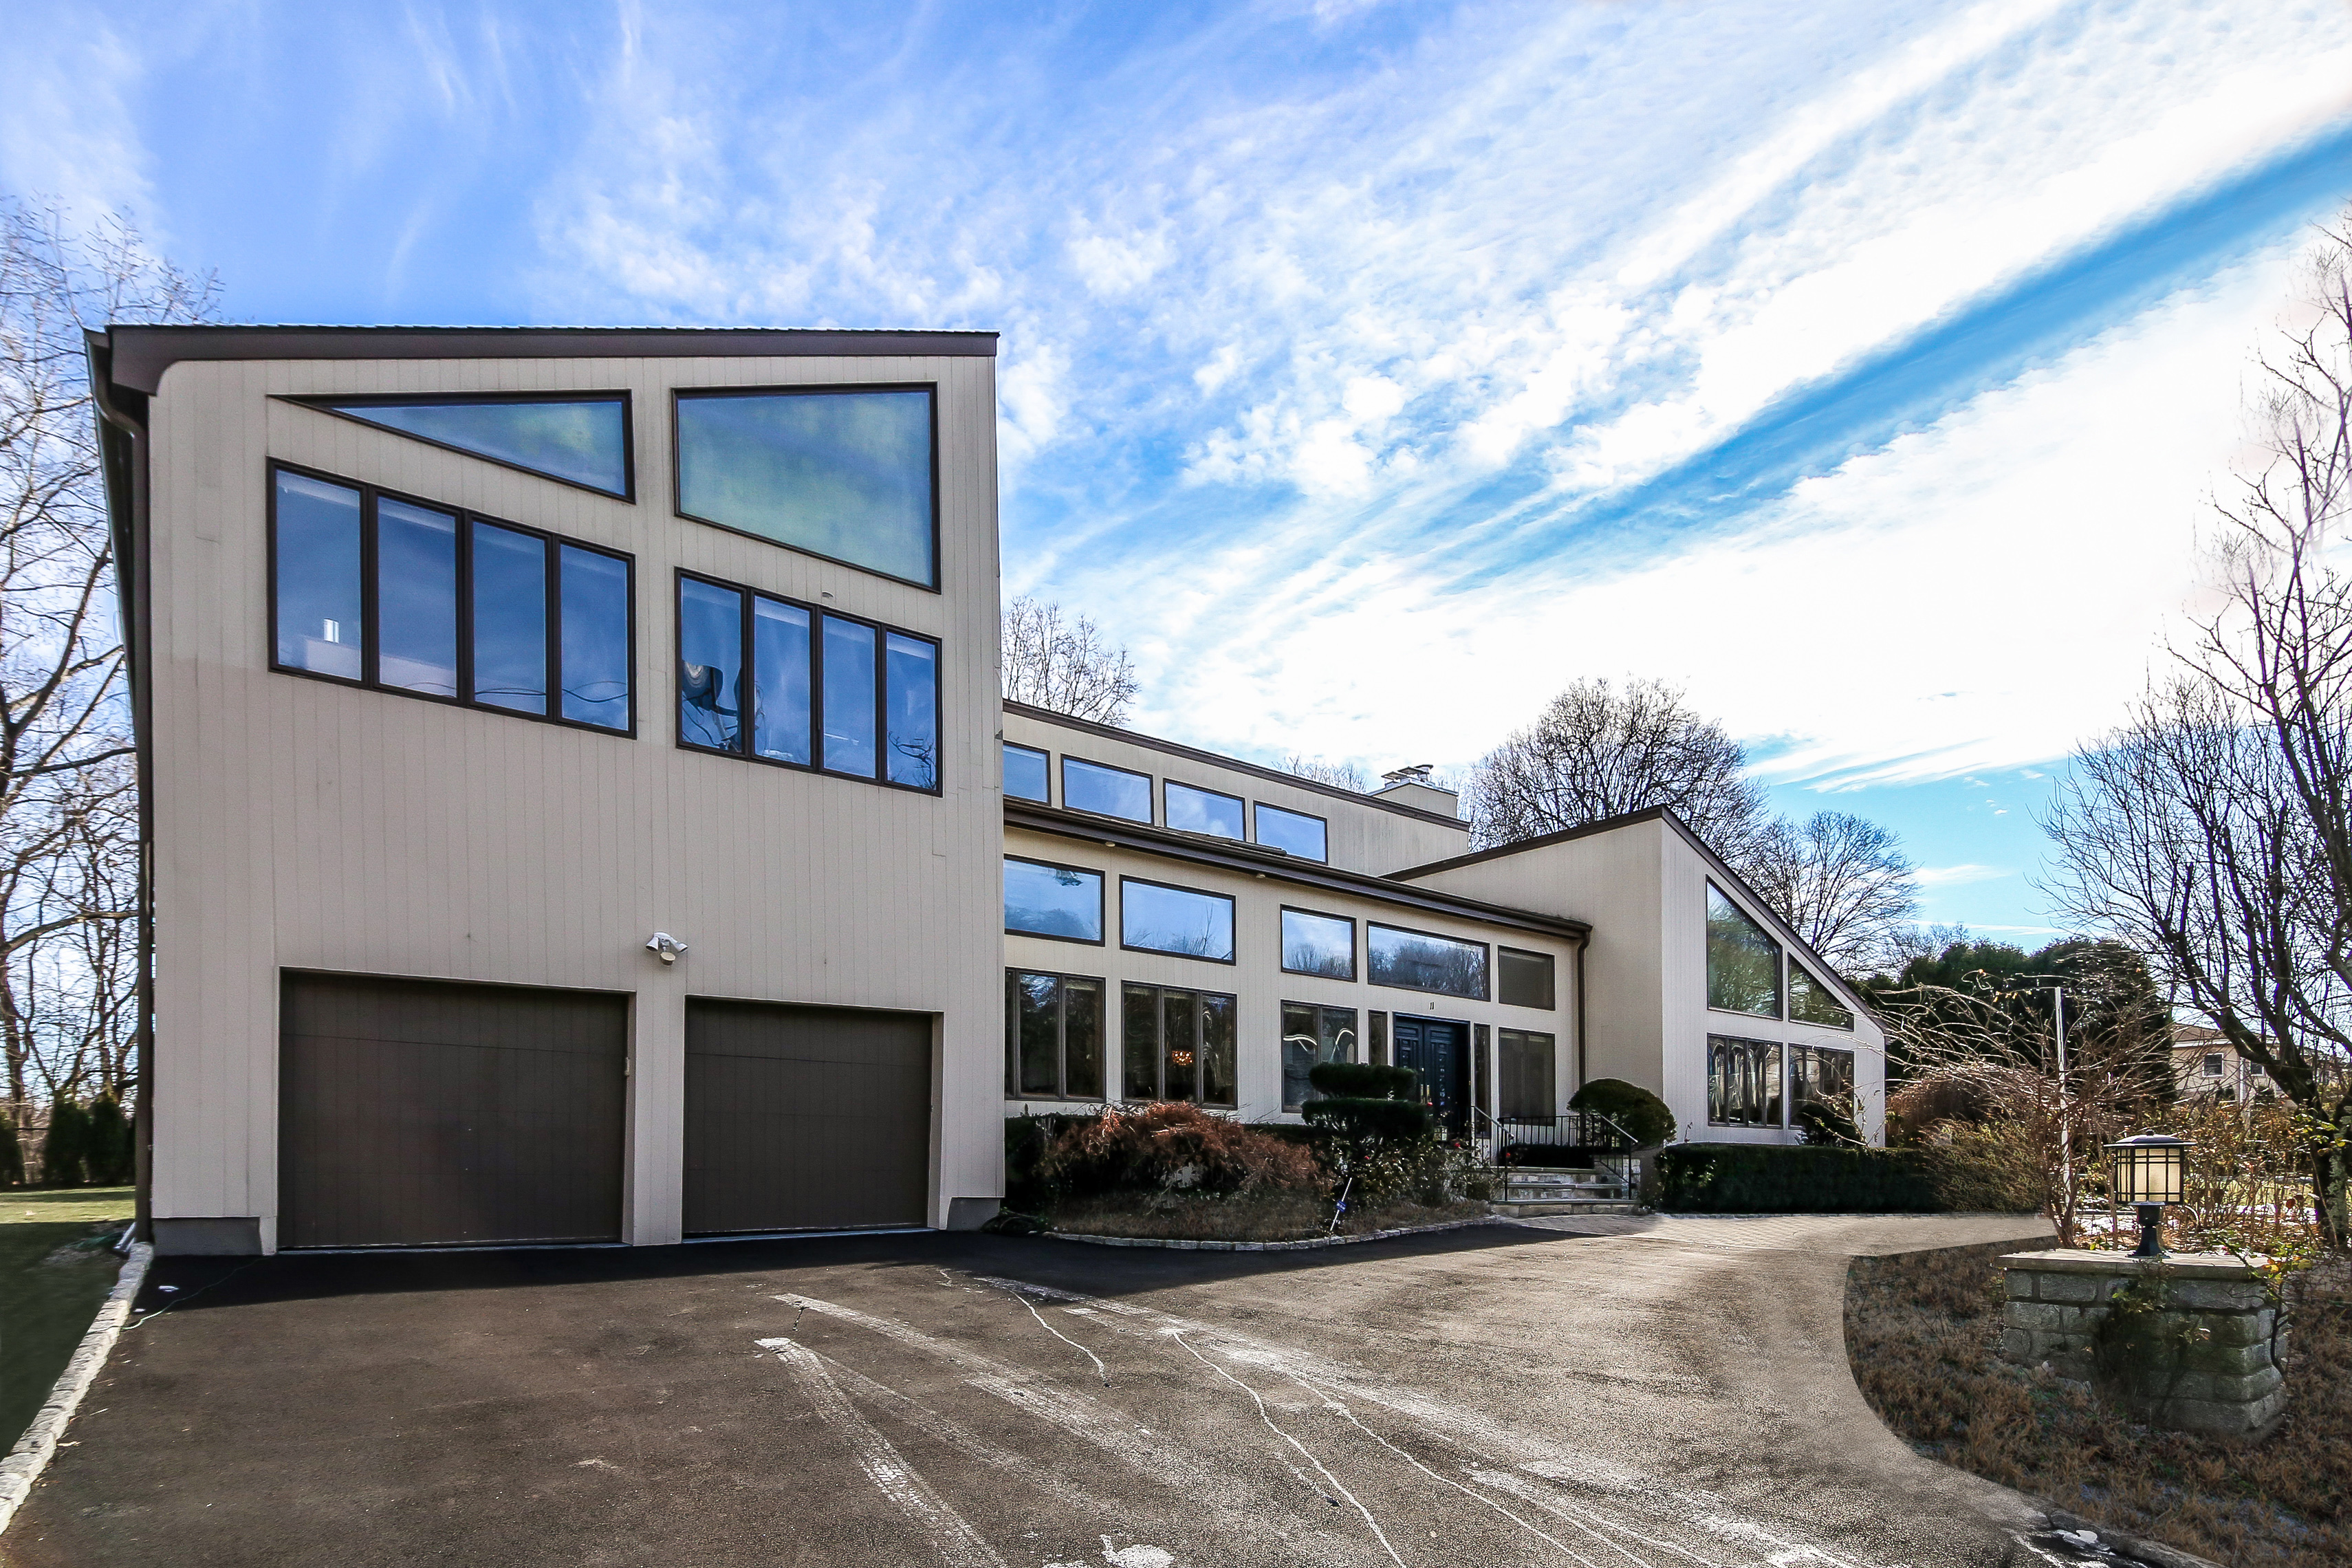 Single Family Home for Sale at Magnificent Contemporary 11 Thomas Street Scarsdale, New York, 10583 United States